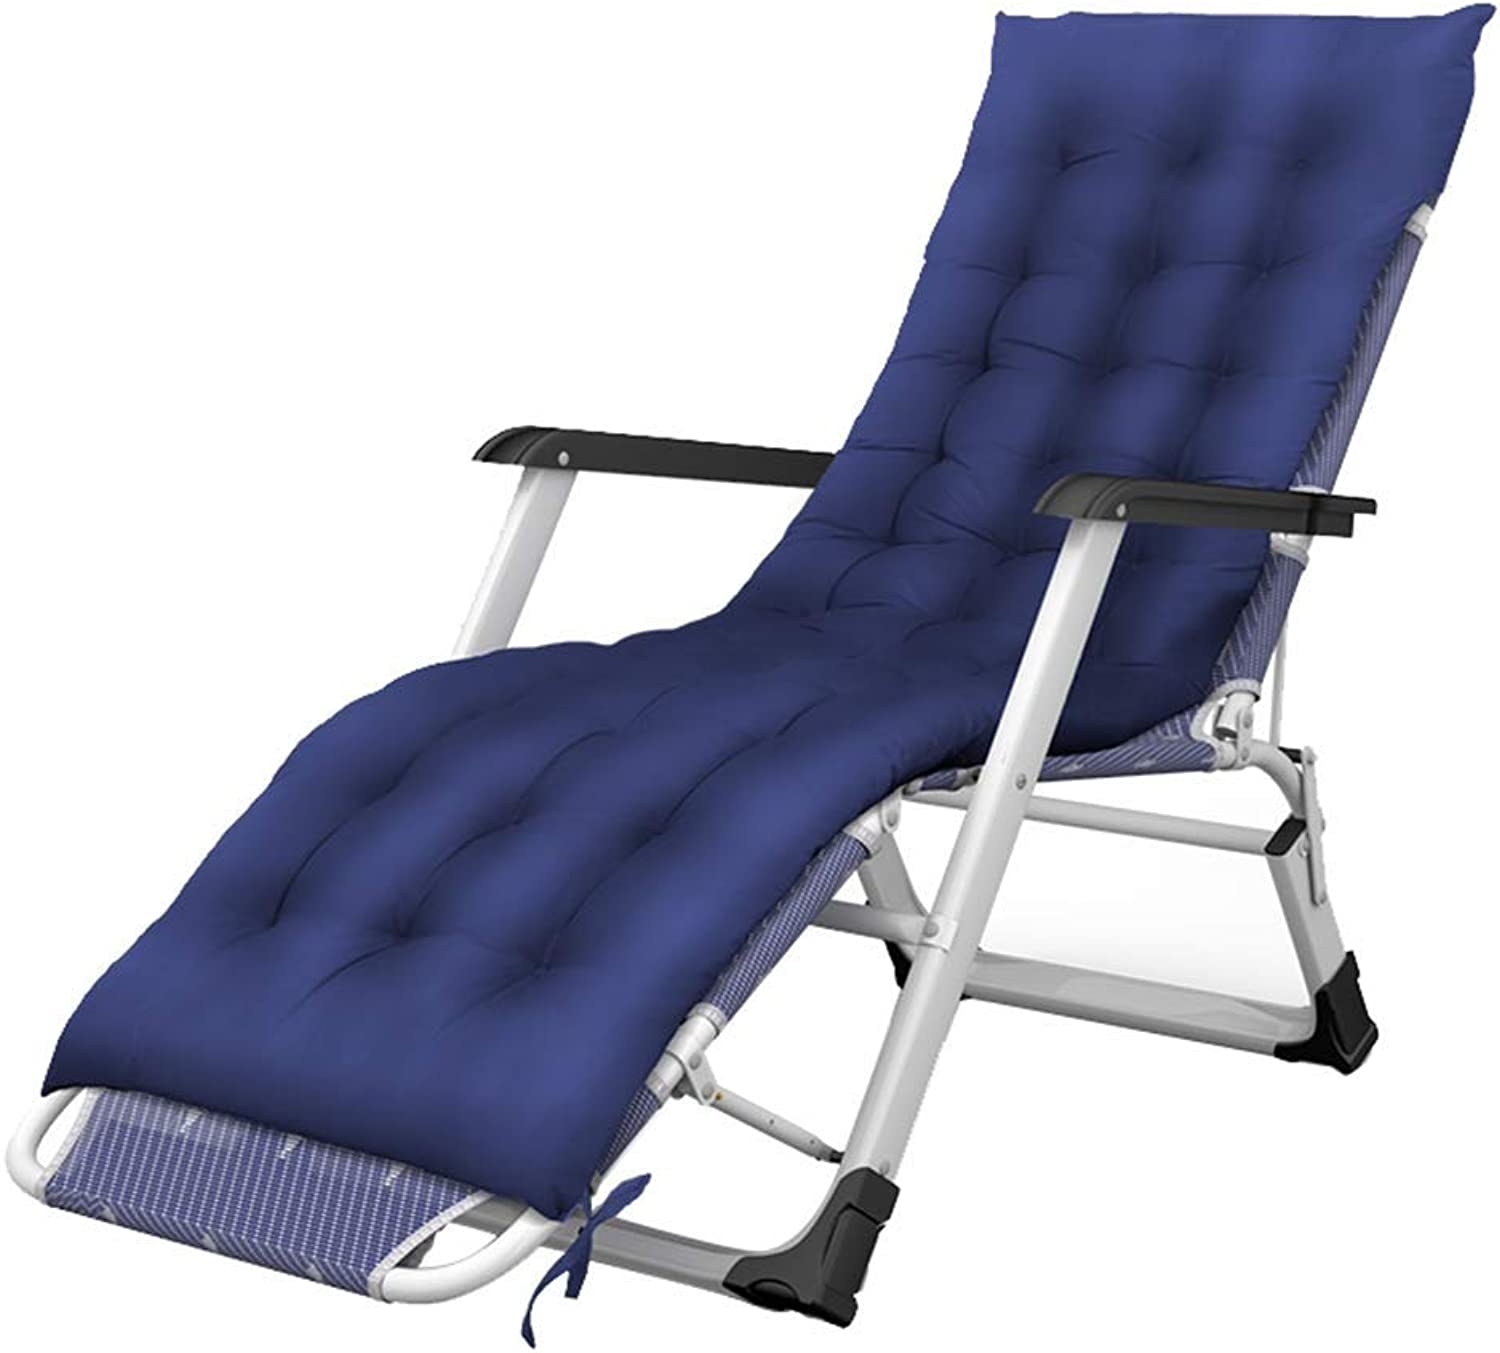 Qing MEI Recliner Home Foldable Backrest Armchair Adjustable Lazy Lounge Chair Beach Camping Bathing Sun Lounger (color   bluee)